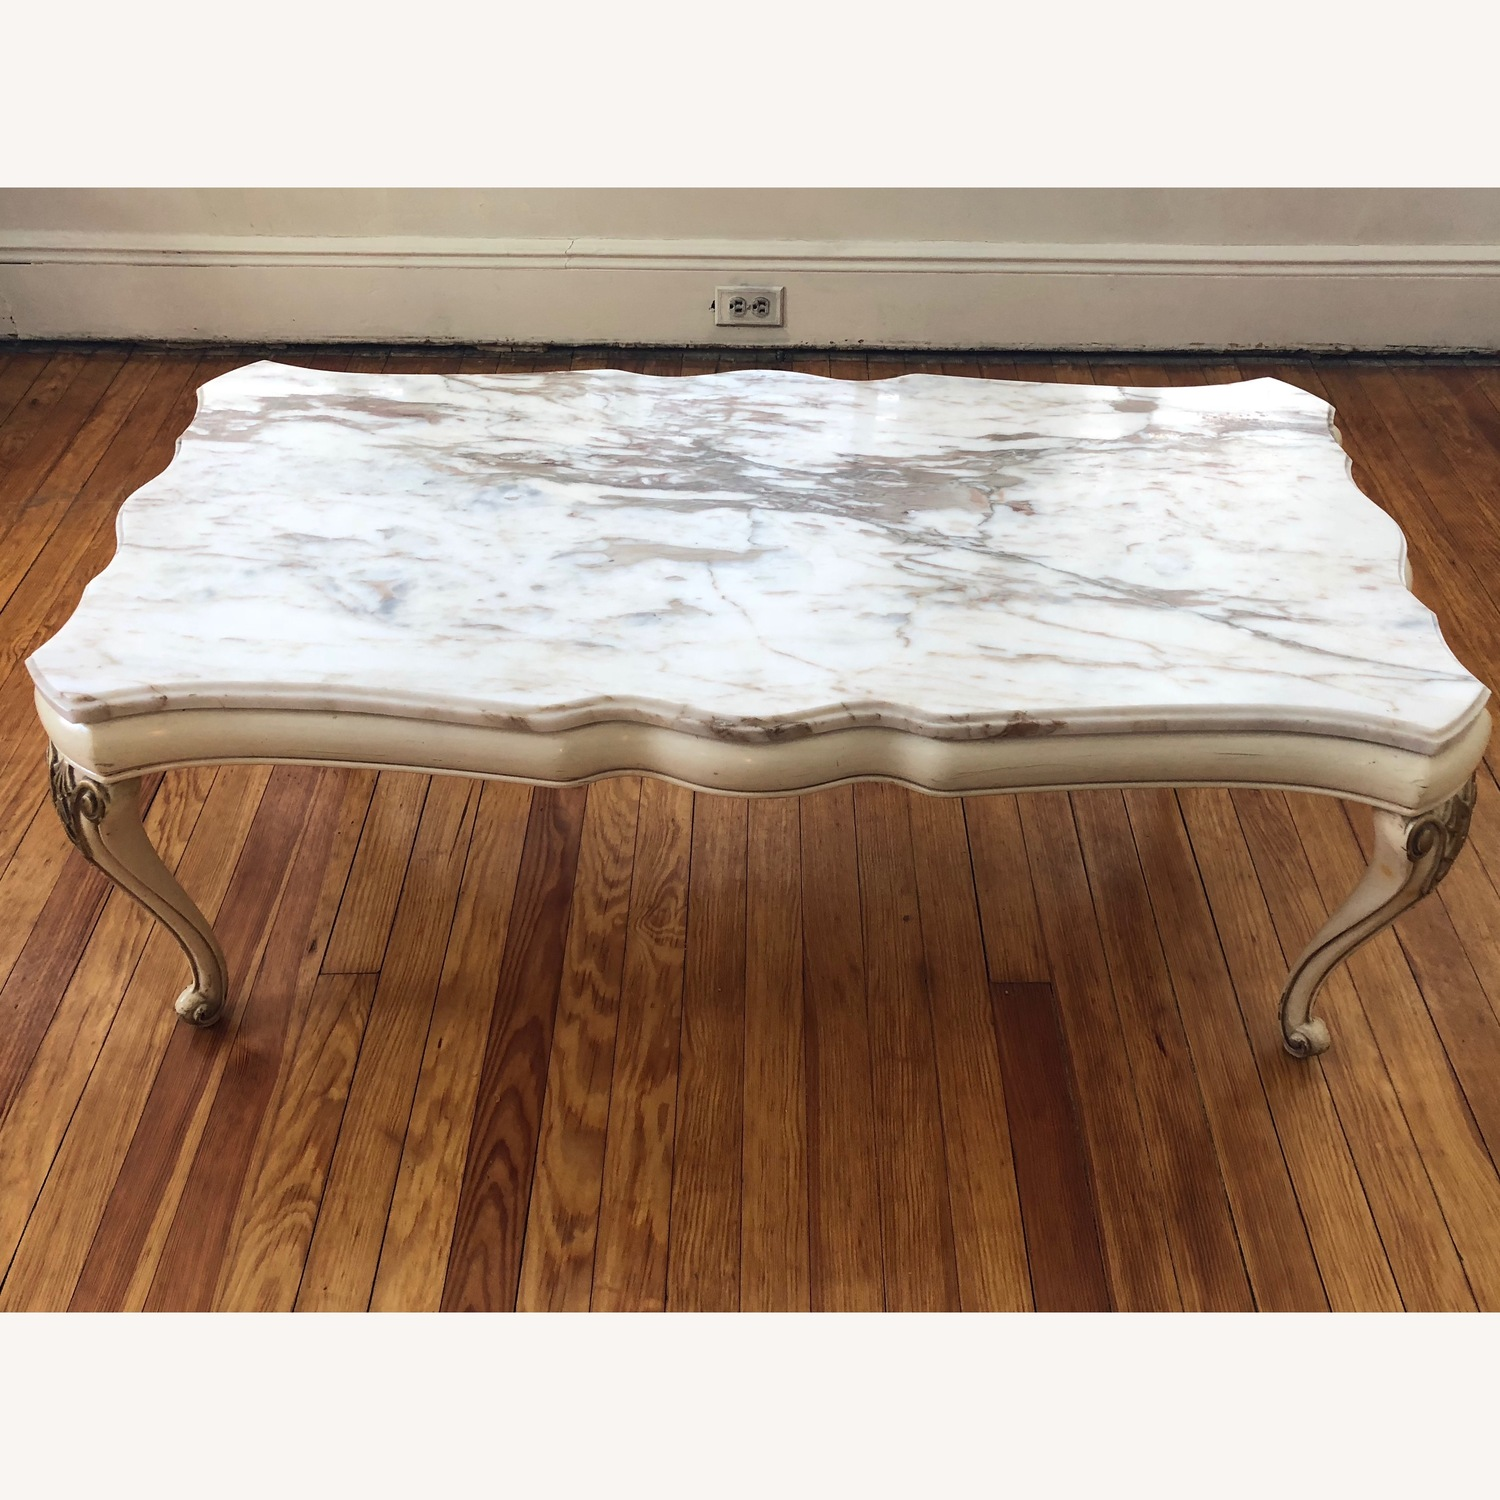 Italian 5 Piece Marble Top Tables - image-6